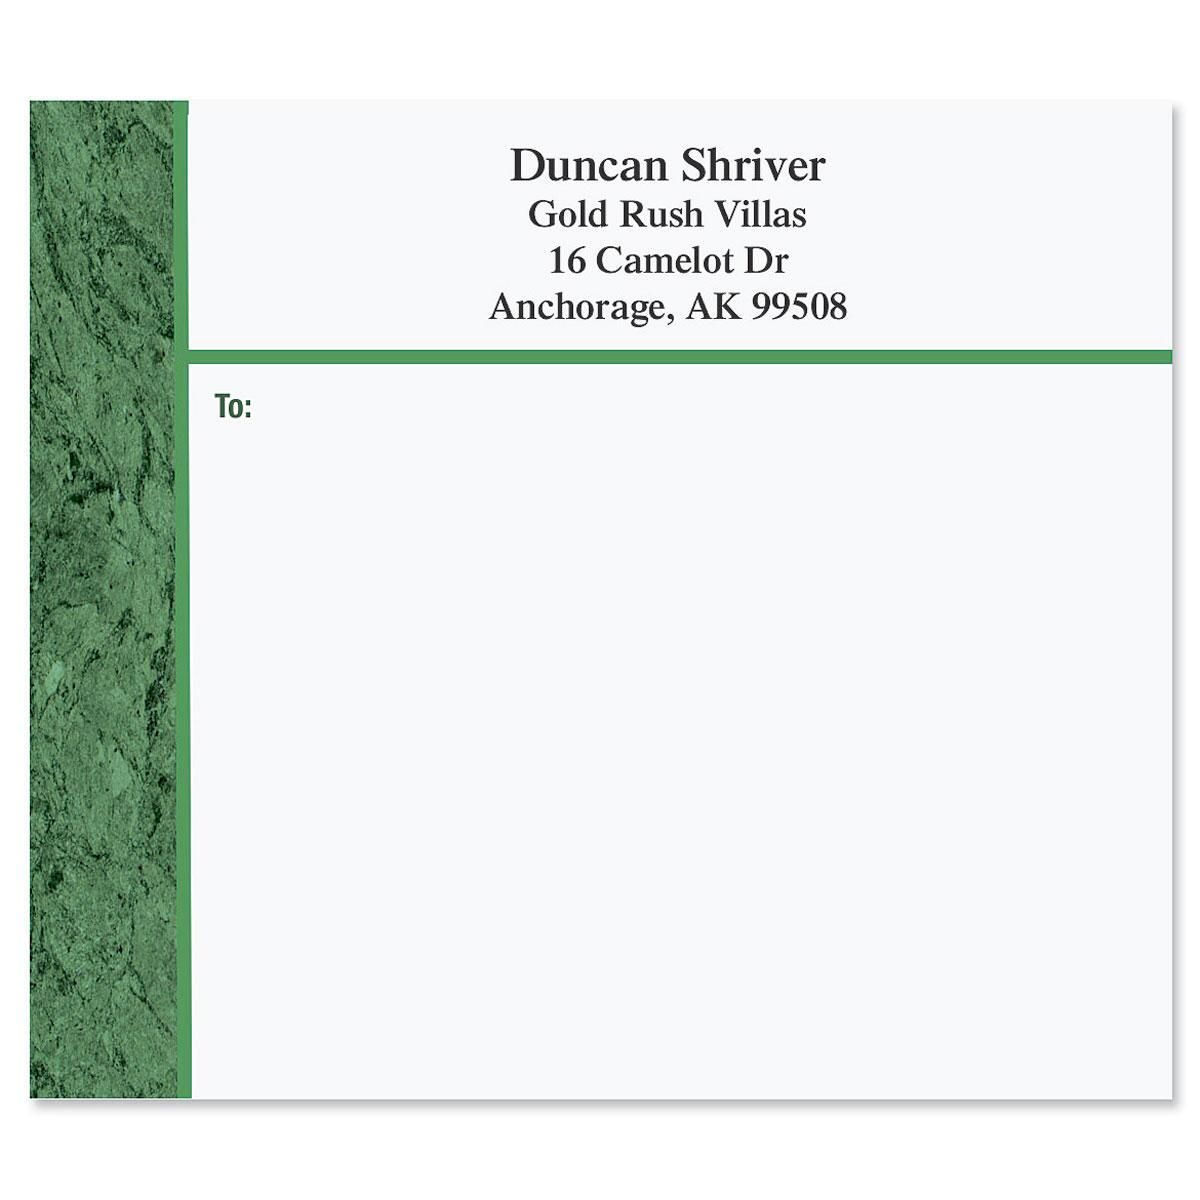 Green Marble Mailing Package Label